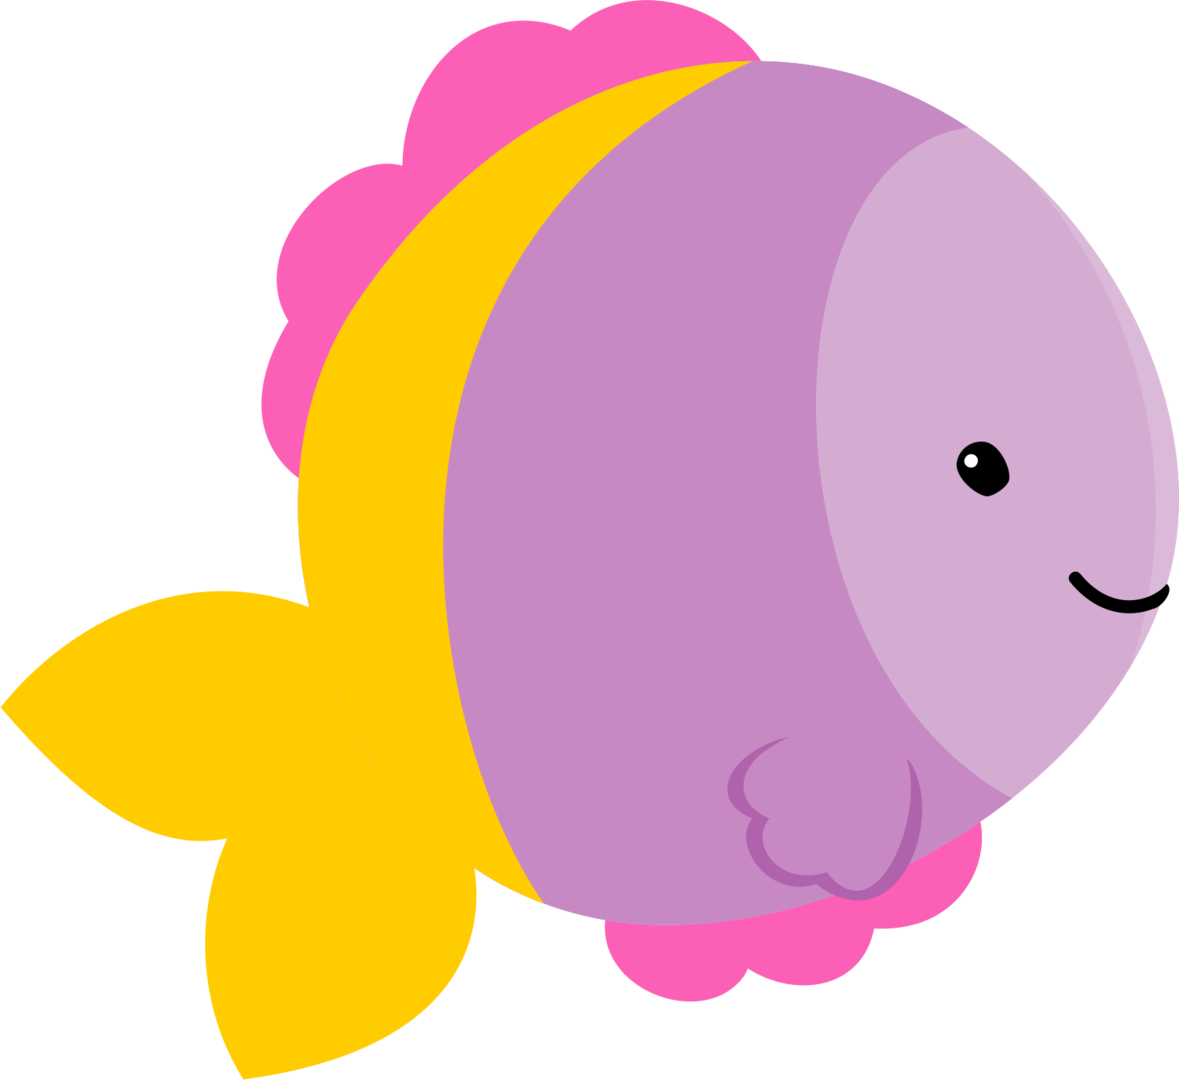 Baby fish in diaper clipart png download 4shared - exibir todas as imagens na pasta PNG | First Birthday ... png download